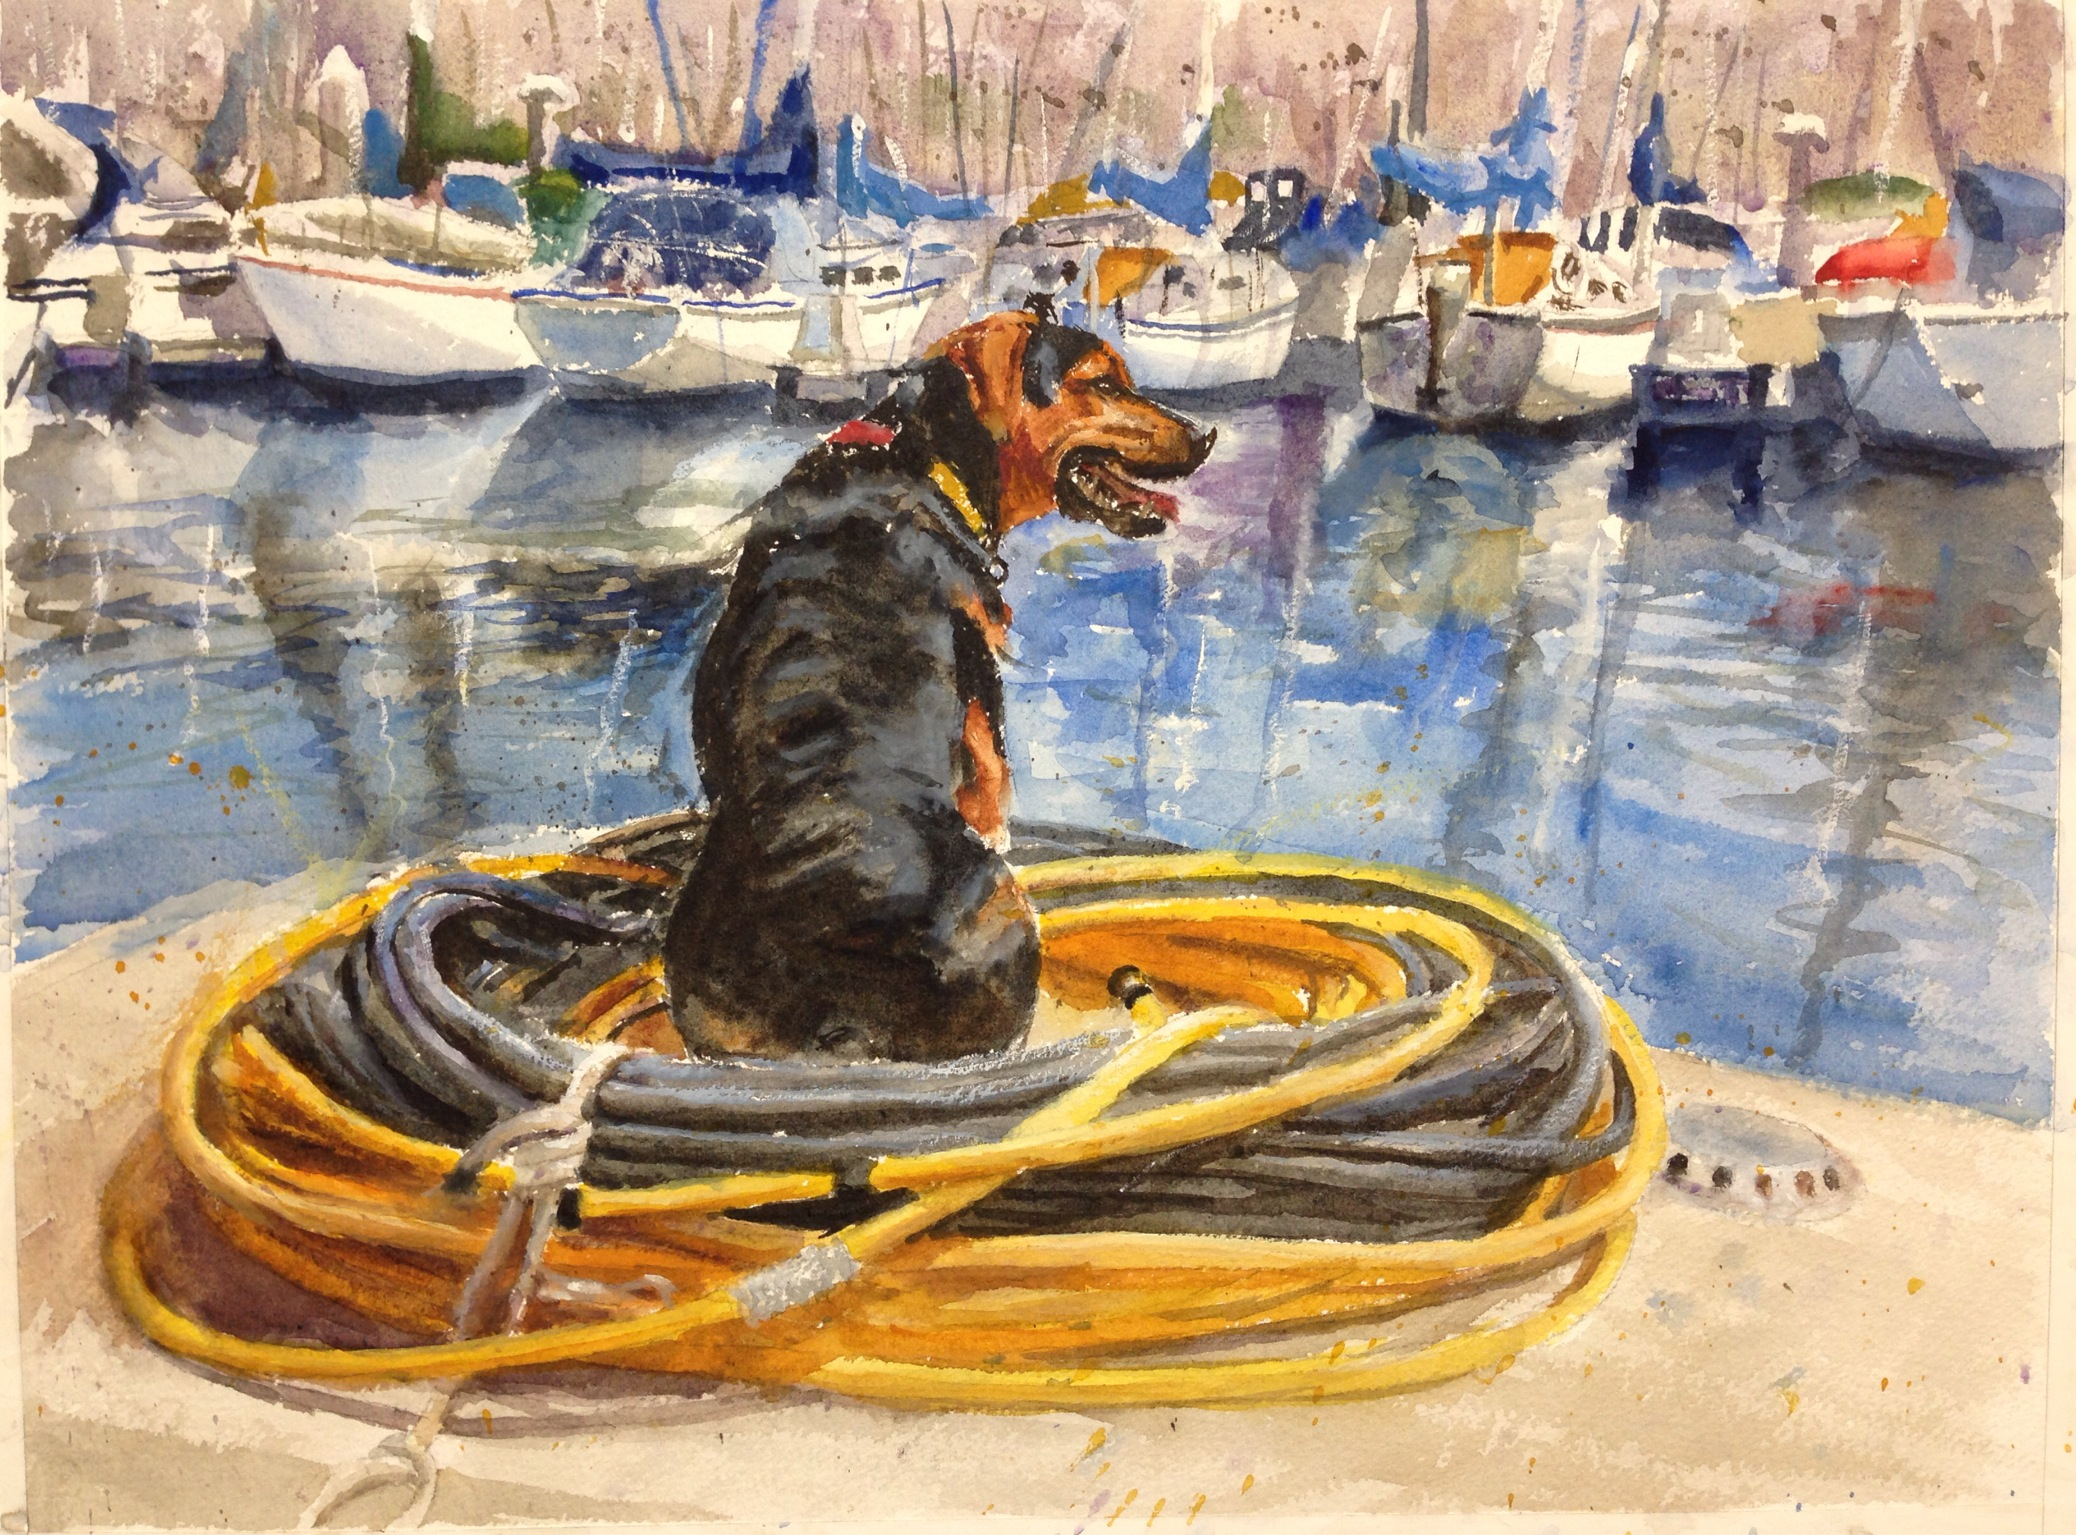 Commissioned watercolor by George Paliotto